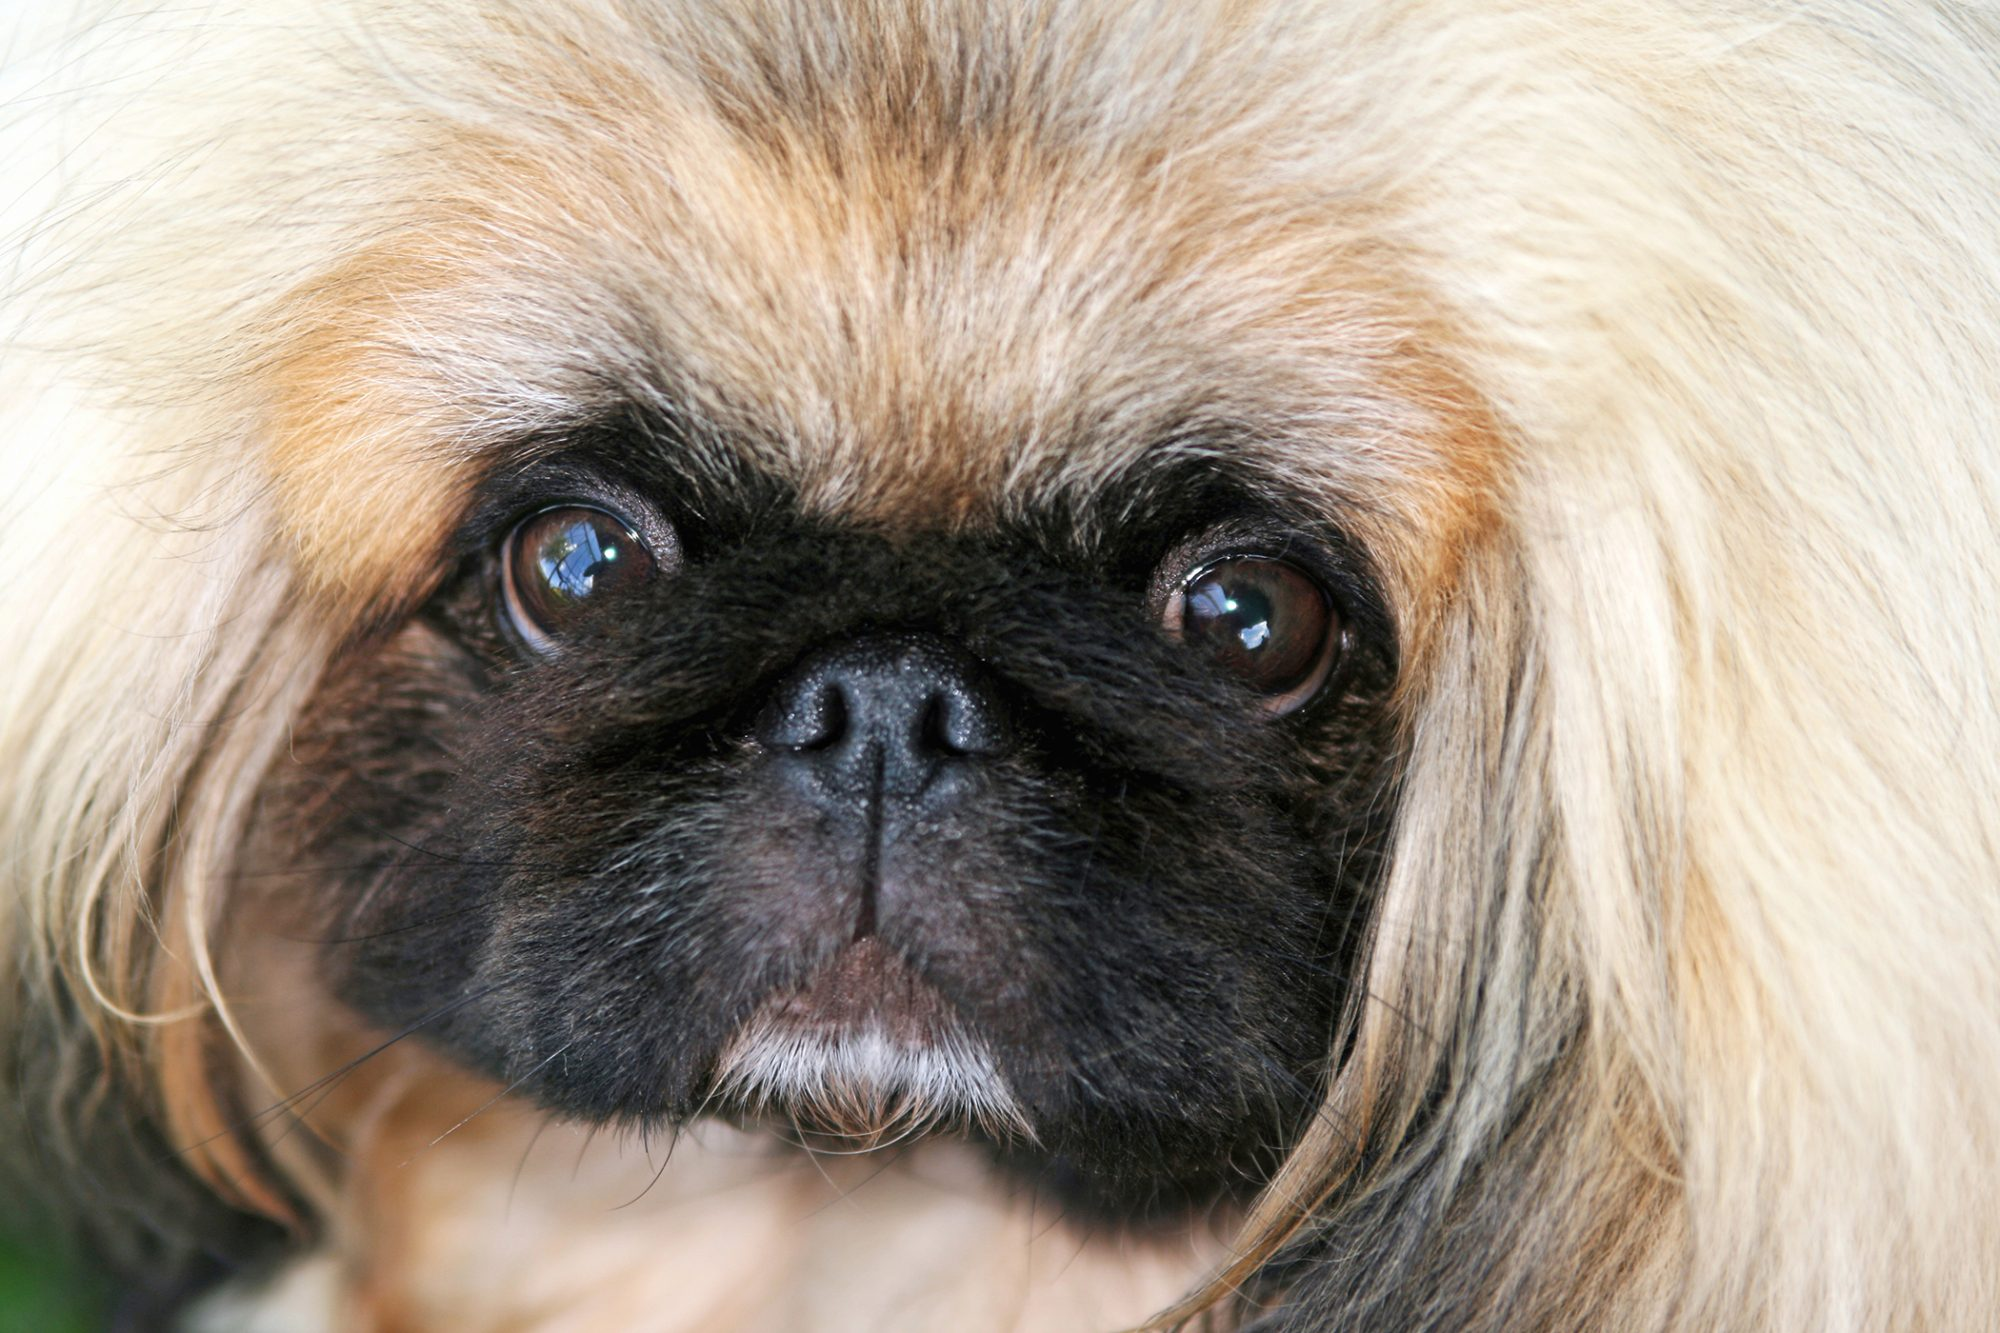 closeup of a Pekingese with a black face and blonde fur